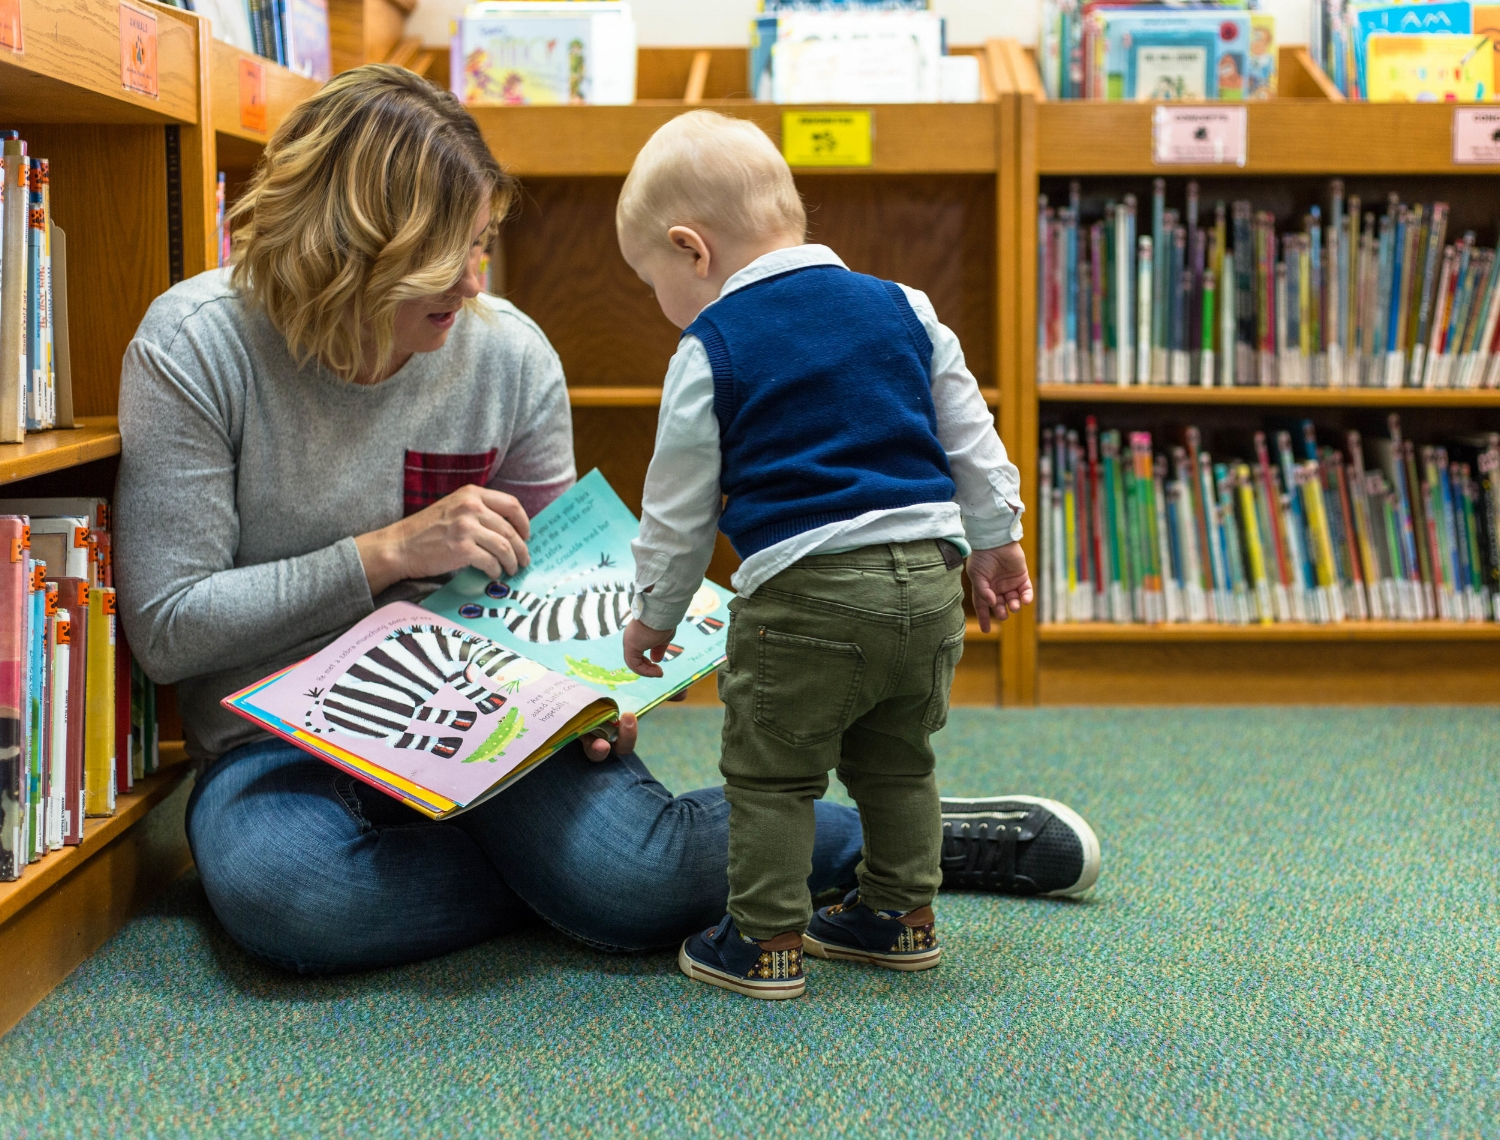 Little boy toddler helping read book at the library